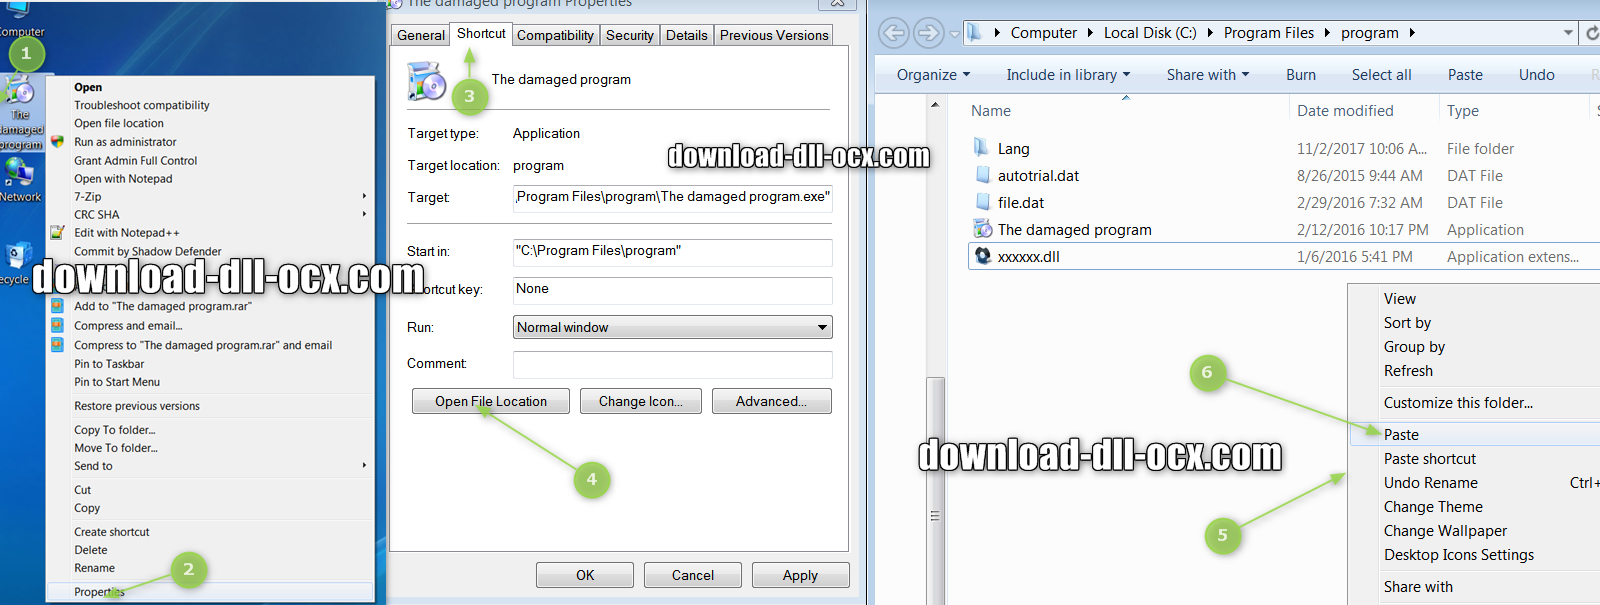 how to install Mqrtdep.dll file? for fix missing